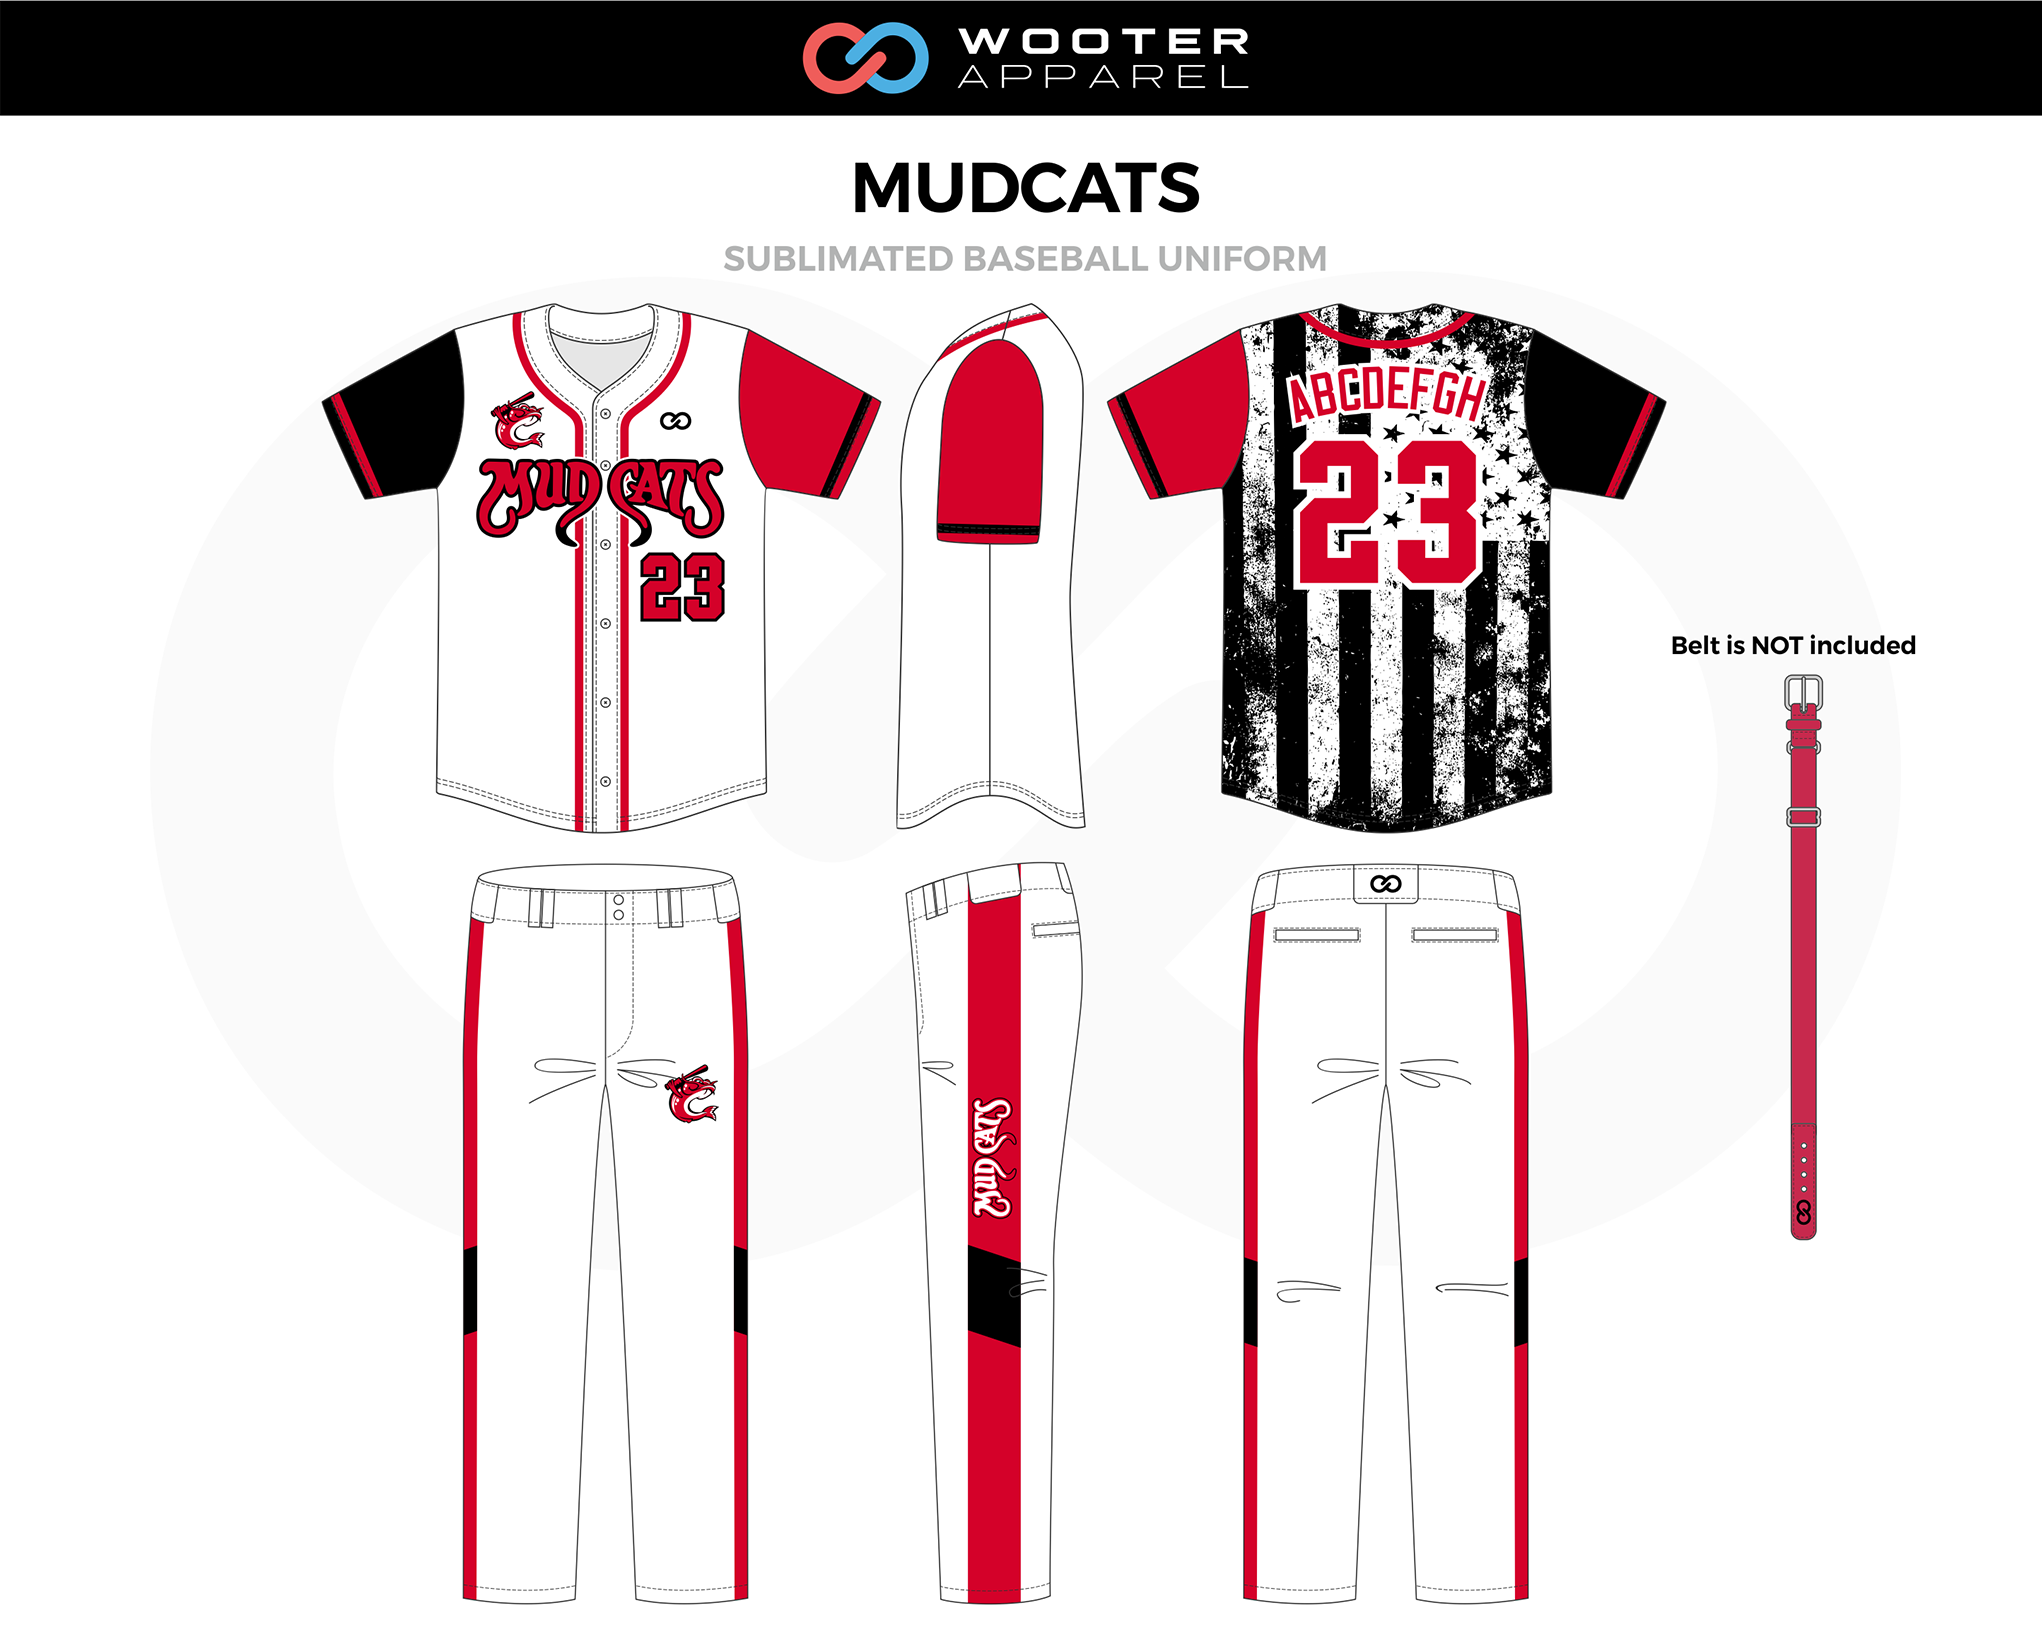 MUDCATS Red Black White Sublimated Baseball Uniform, Jersey and Pants